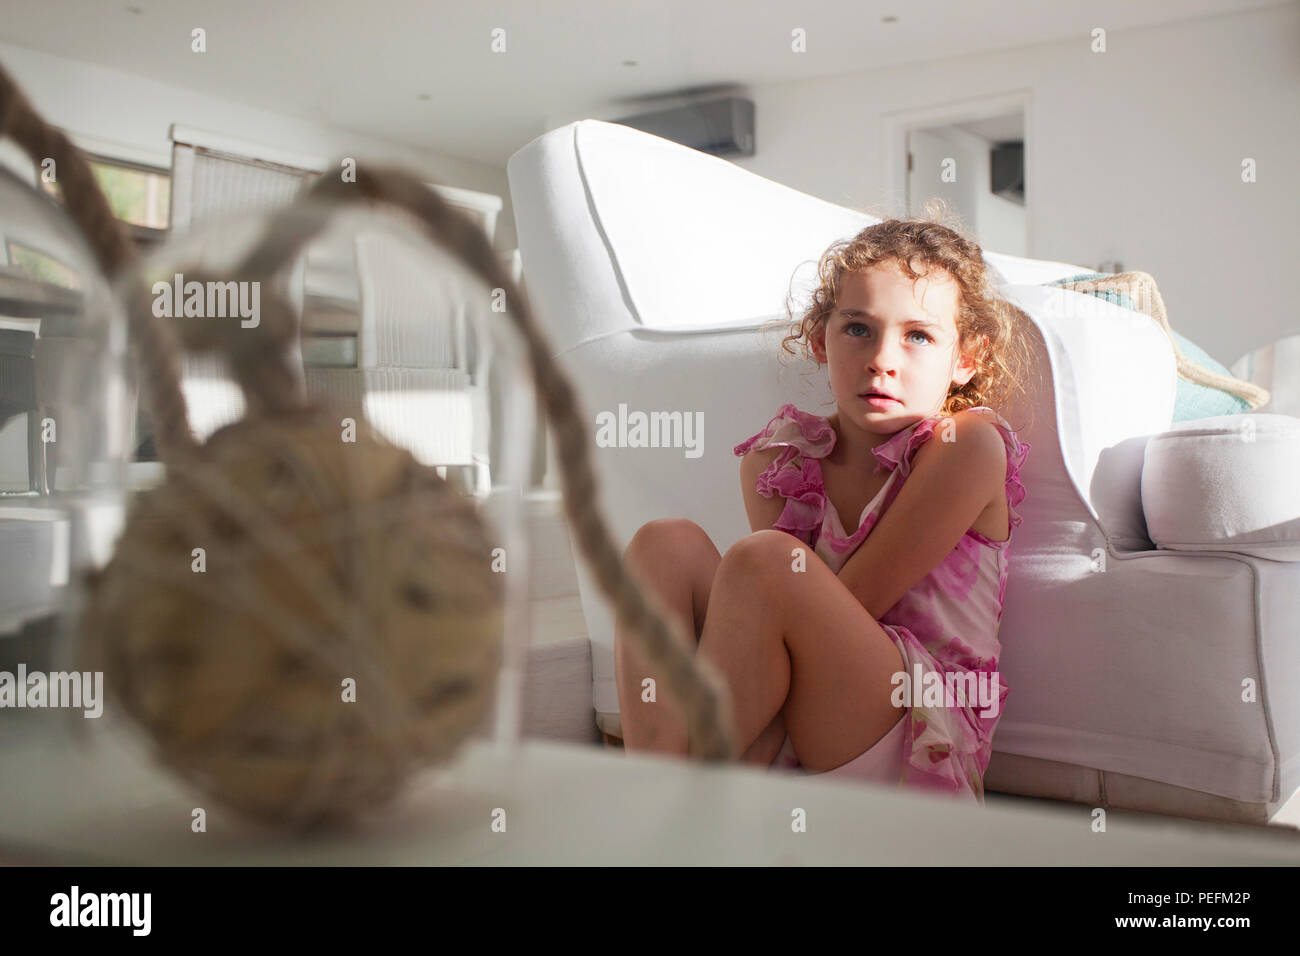 Young girl in pink seated - Stock Image